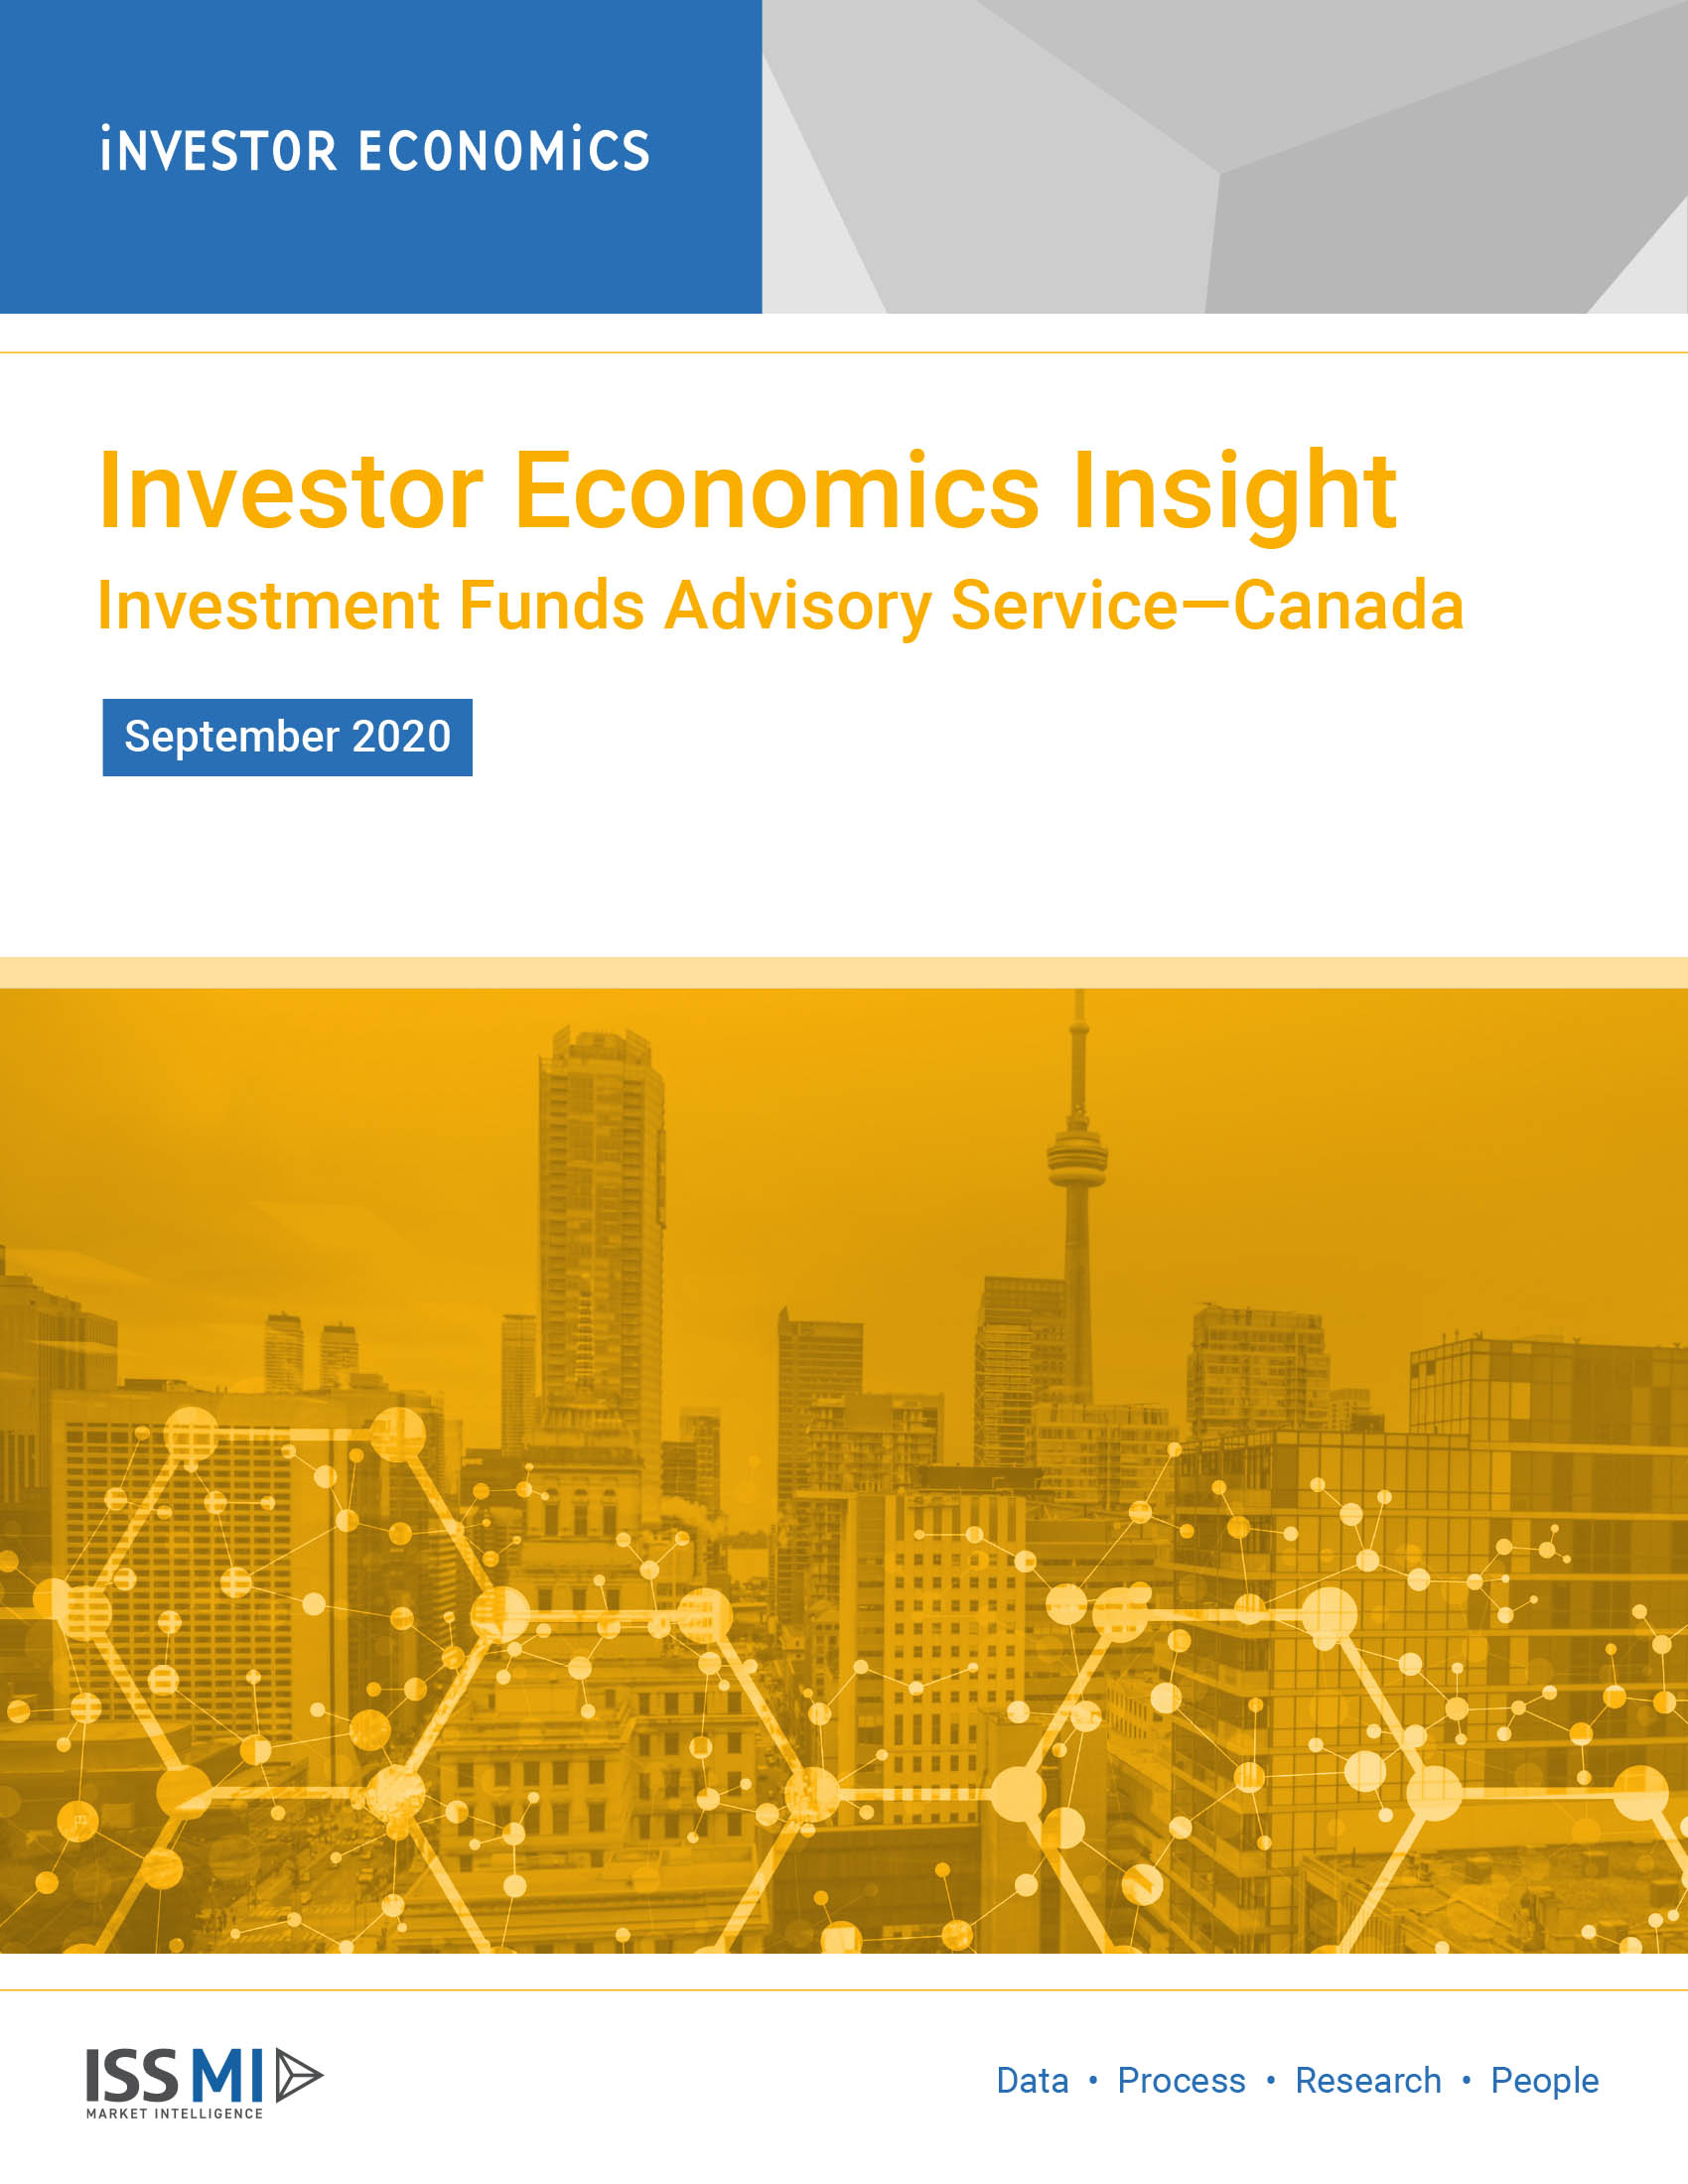 Investor Economics Insight September 2020—Pre-release